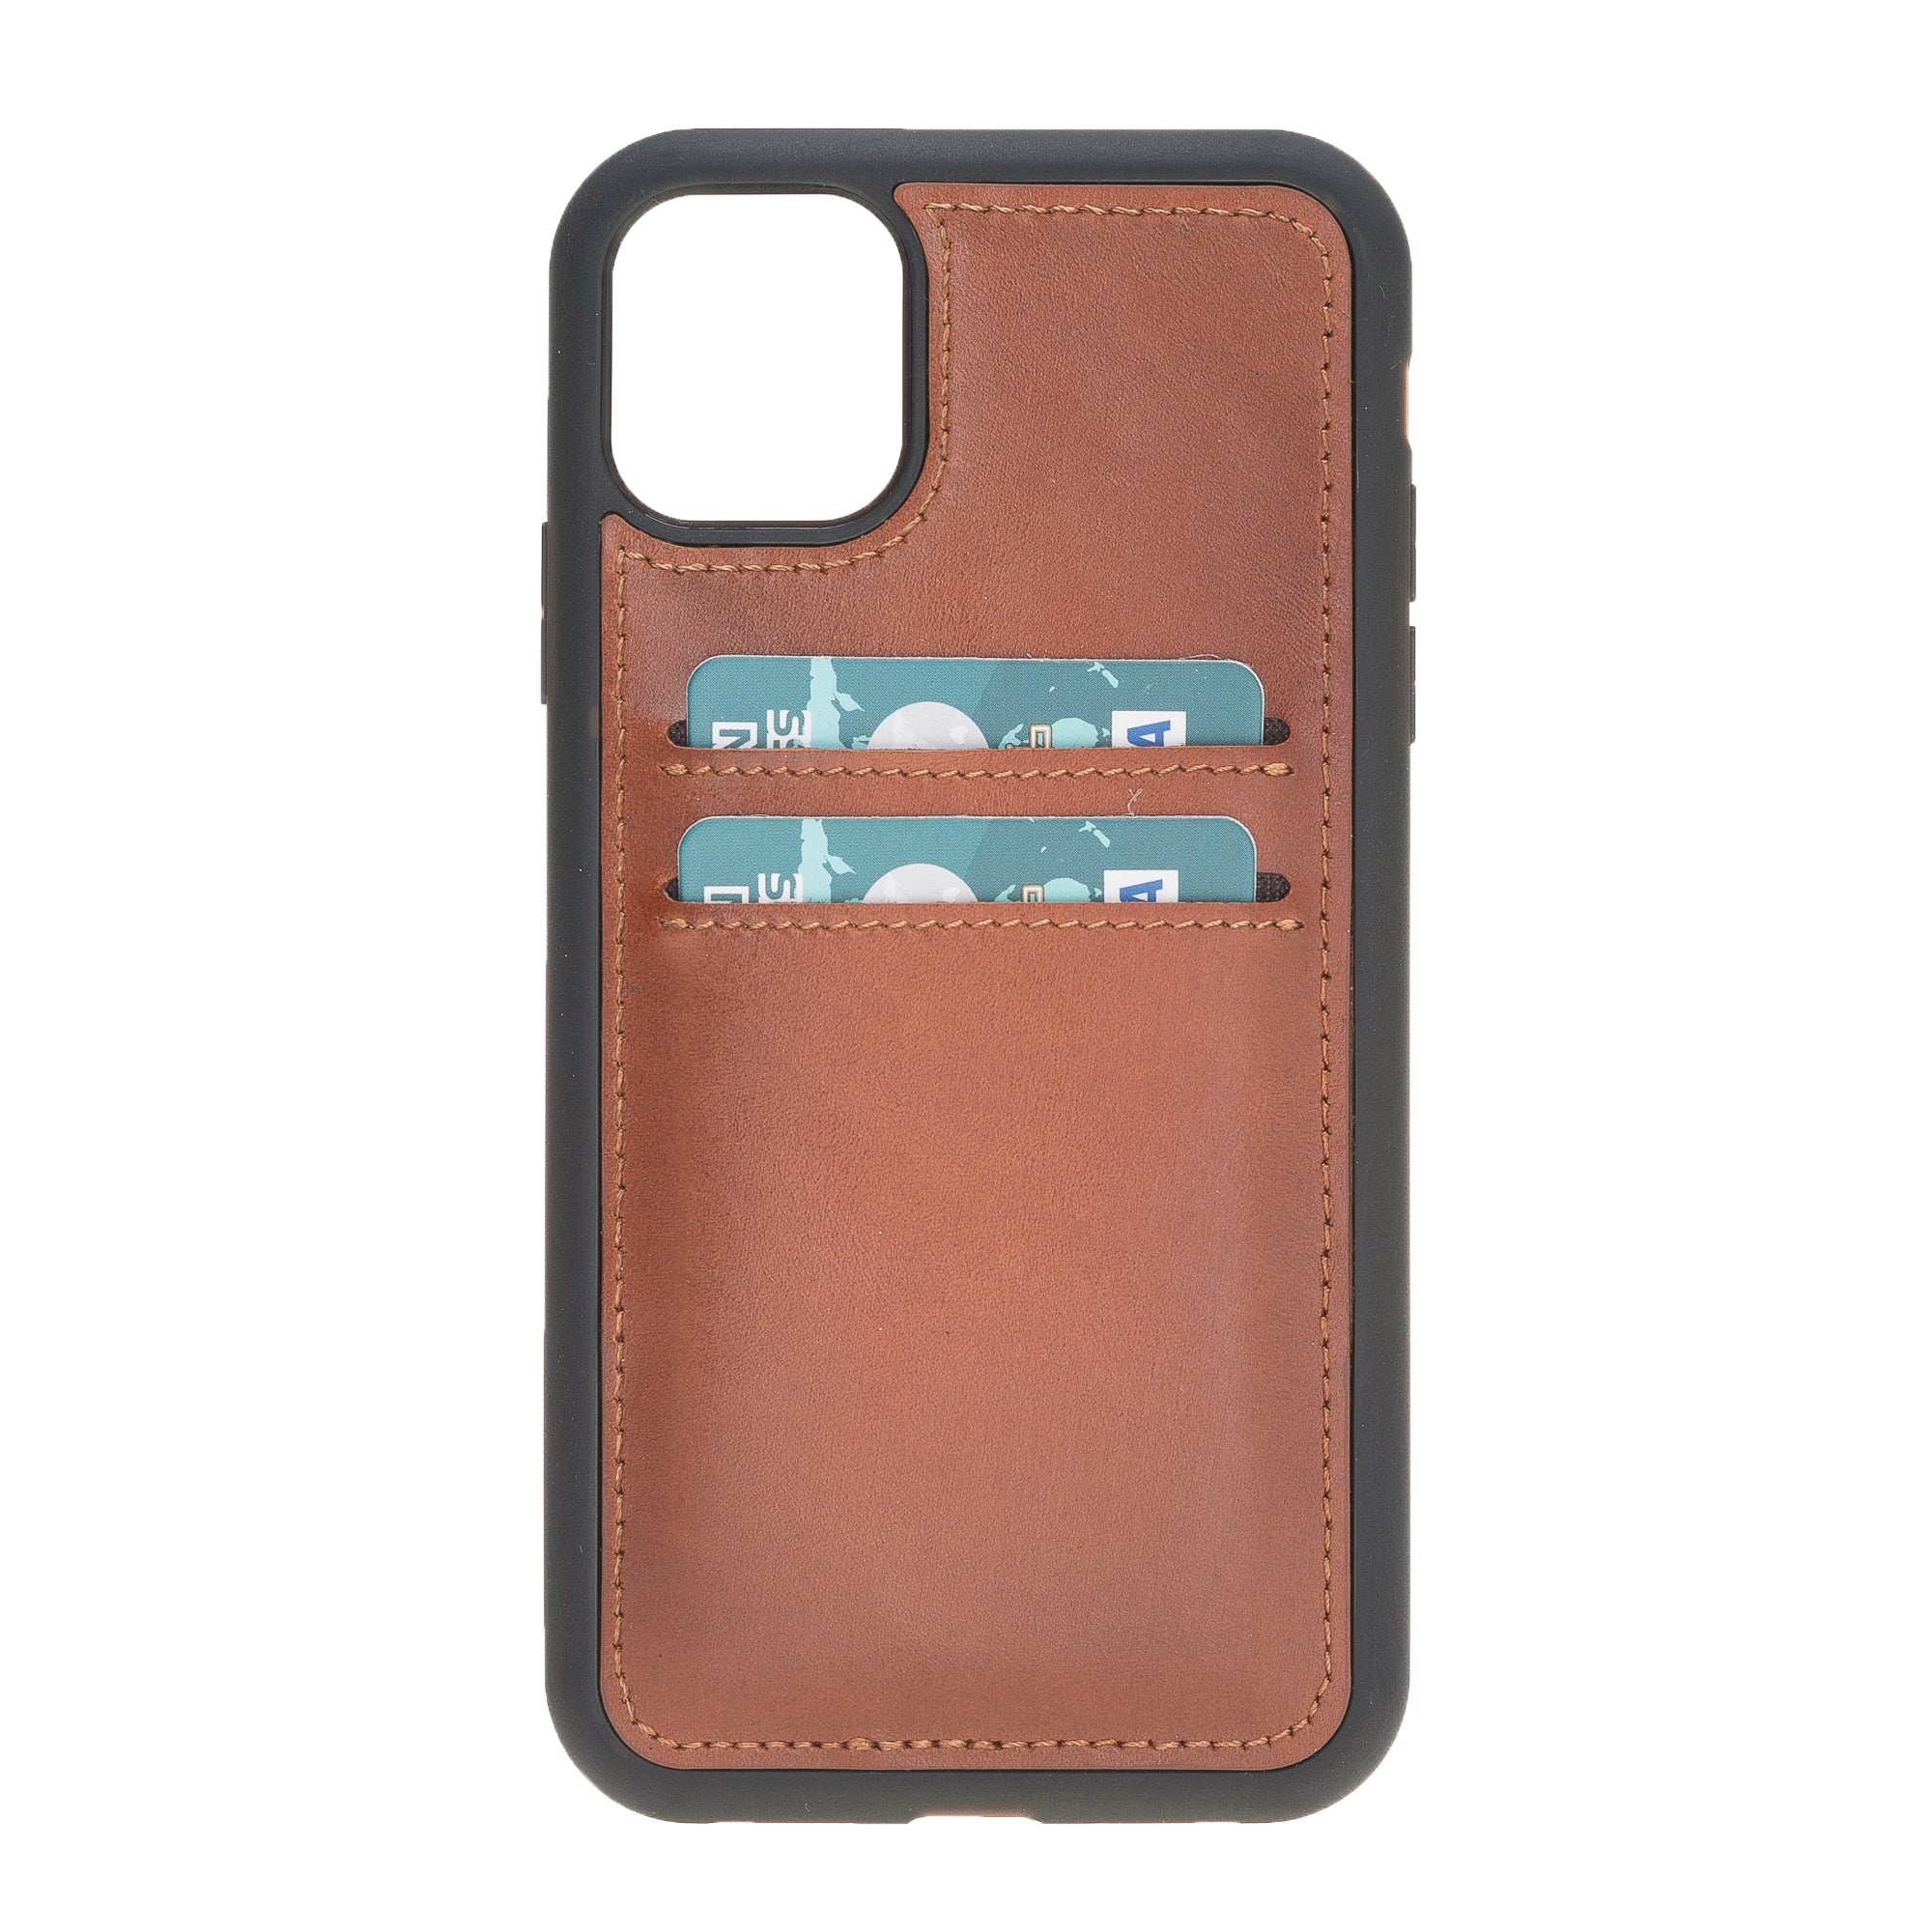 "Brown Burnised Apple iPhone 11 (6.1"") Leather Case w/ Card Slots"